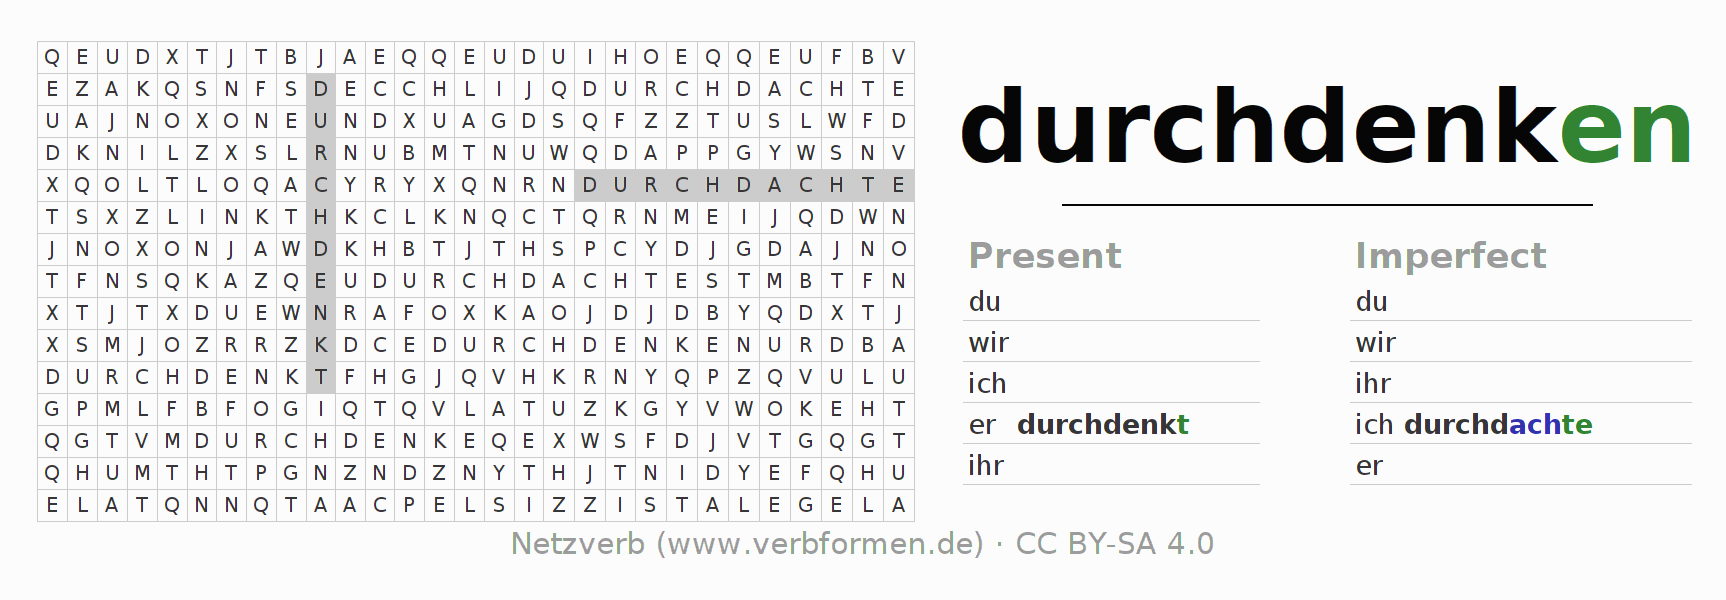 Word search puzzle for the conjugation of the verb durchdenken